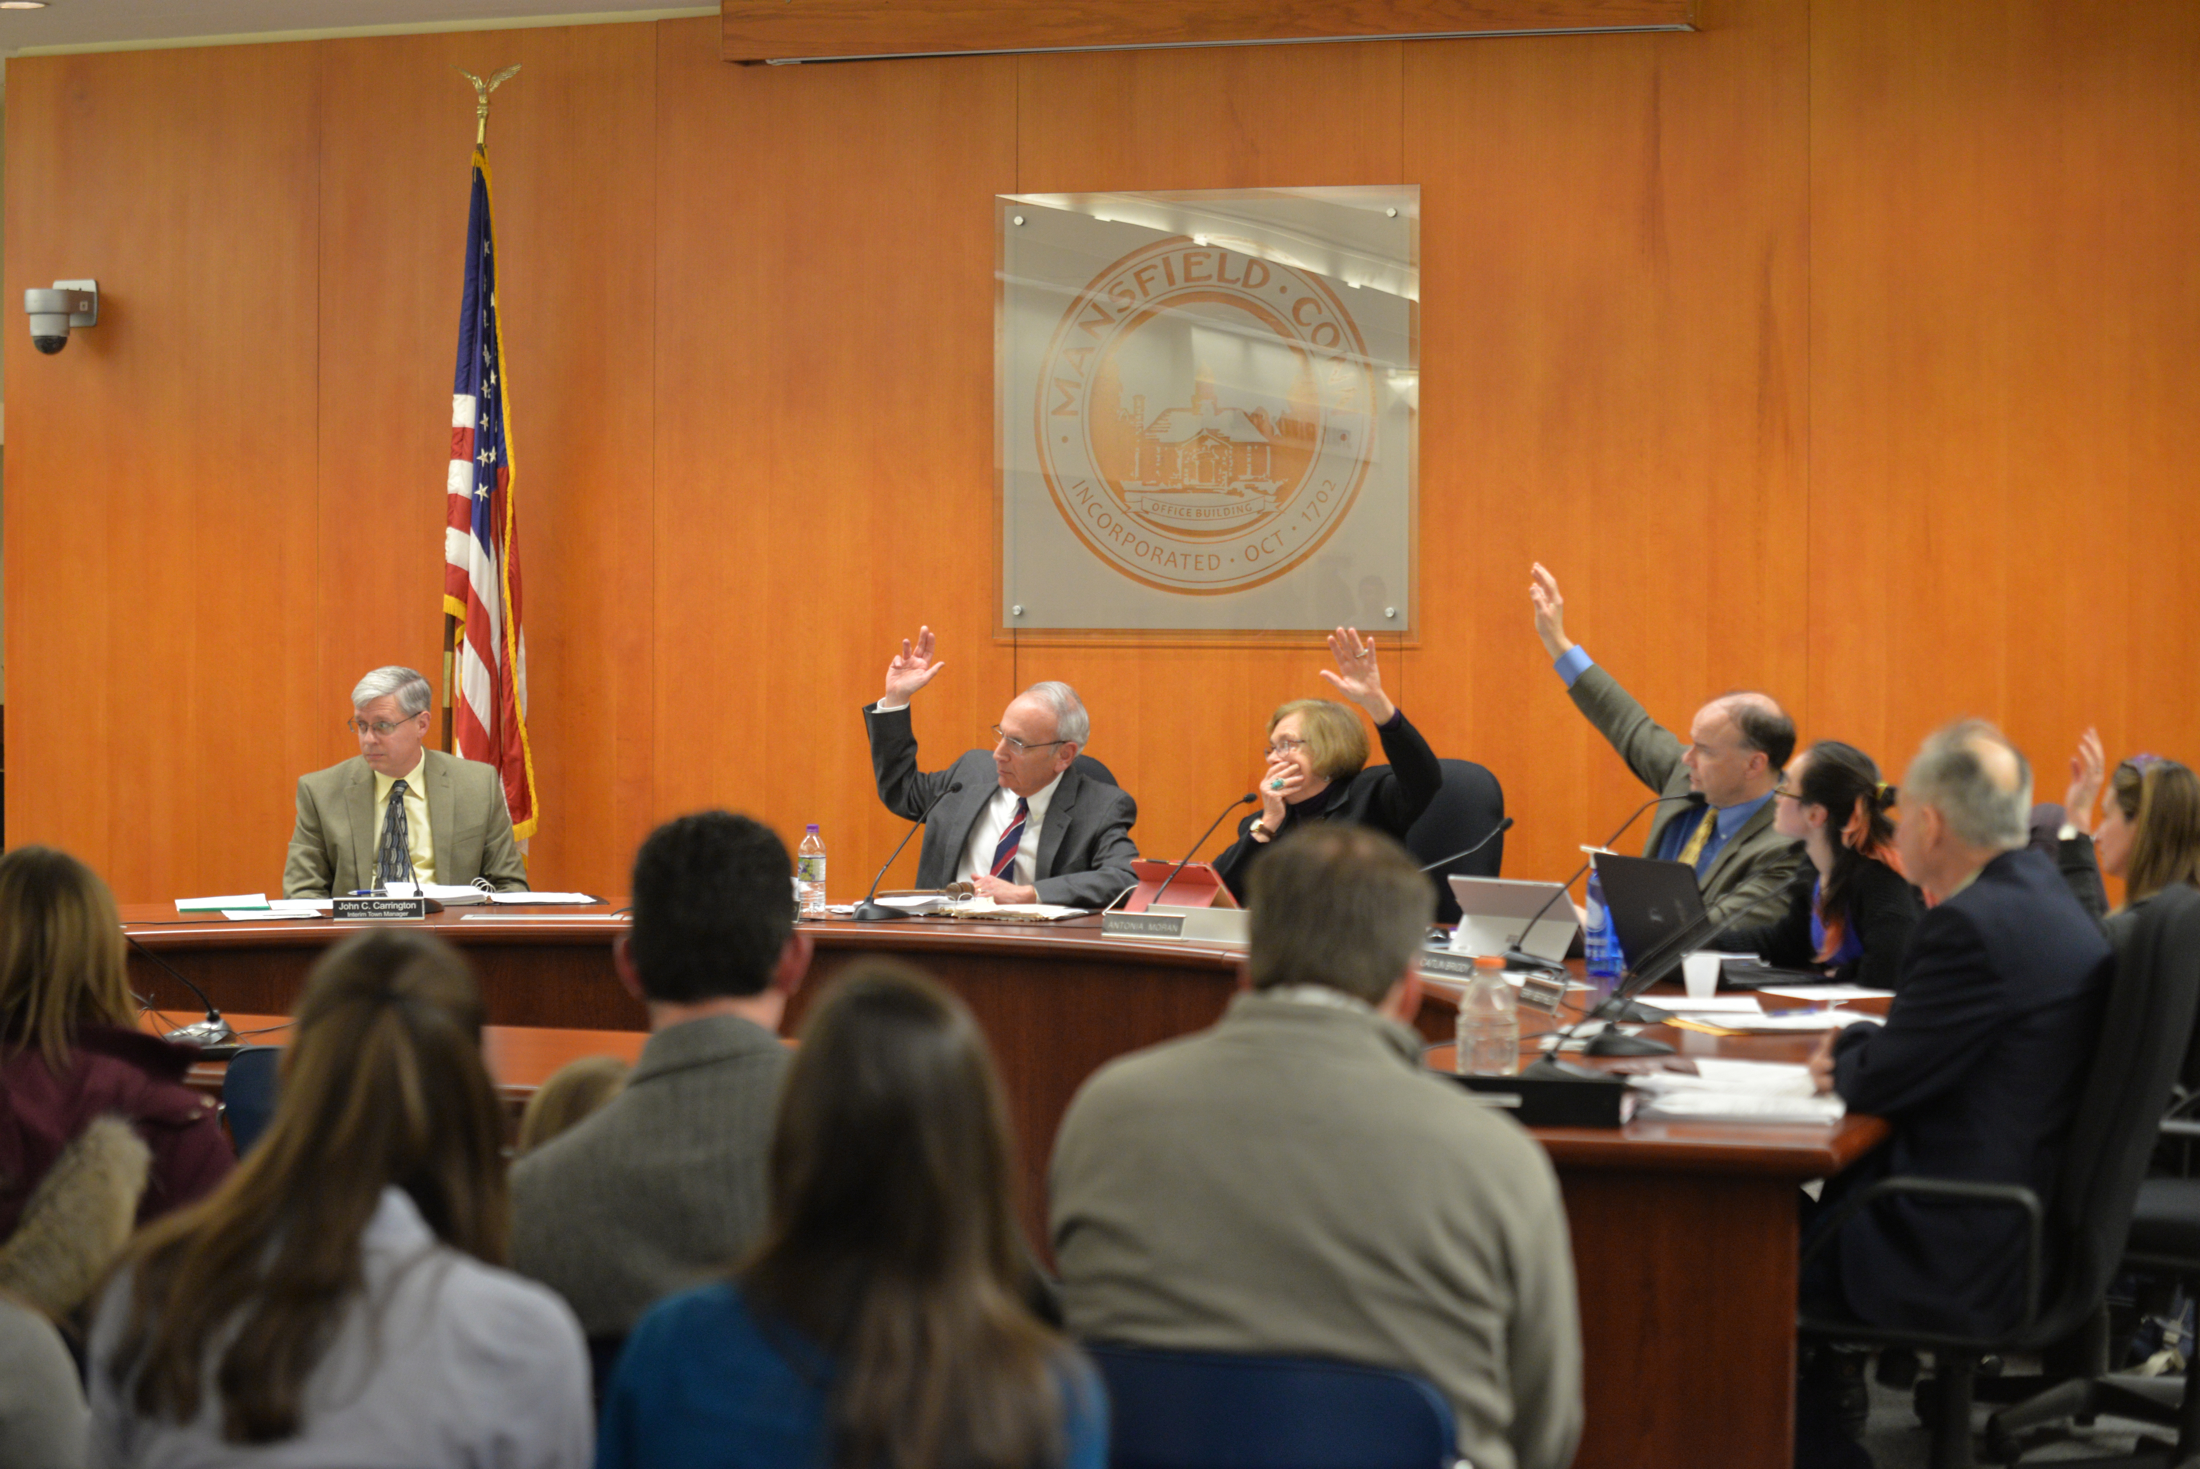 The Mansfield Town Council votes to not add Ric Hossack after a divisive debate and public comment section in Mansfield Town Hall on Tuesday evening. A Republican seat is open on the council after Charles J. Ausburger vacated his seat due to medical reasons. (Amar Batra/The Daily Campus)